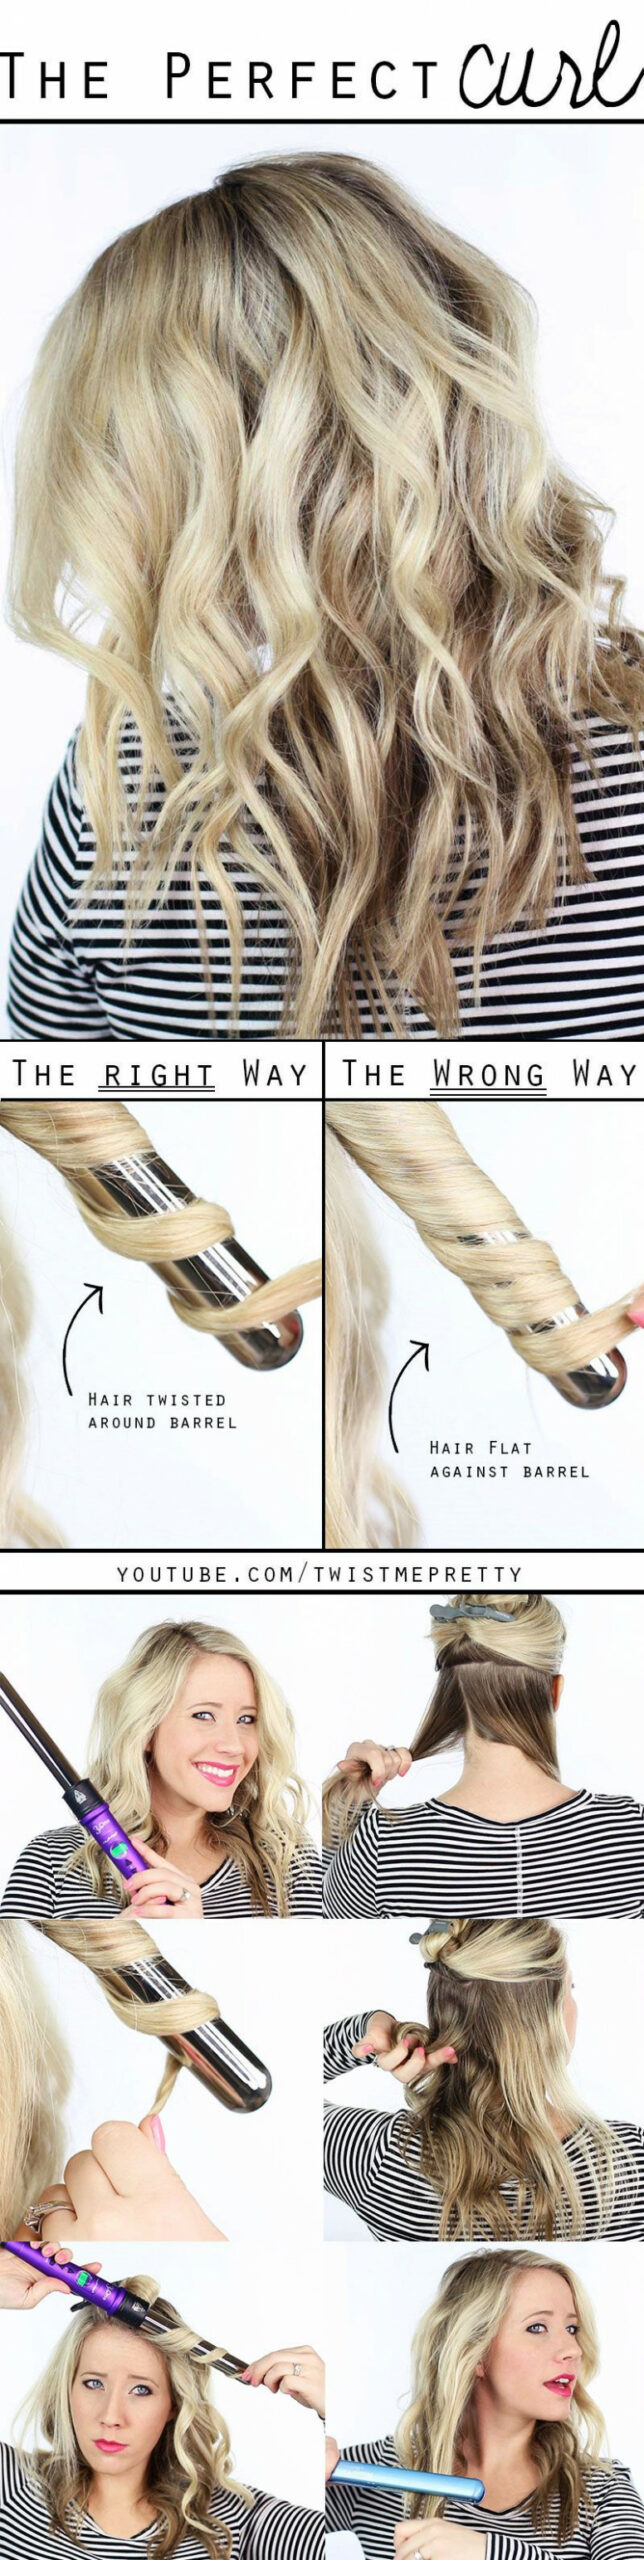 8 hair curling wand tutorials | curling hair with wand, super easy